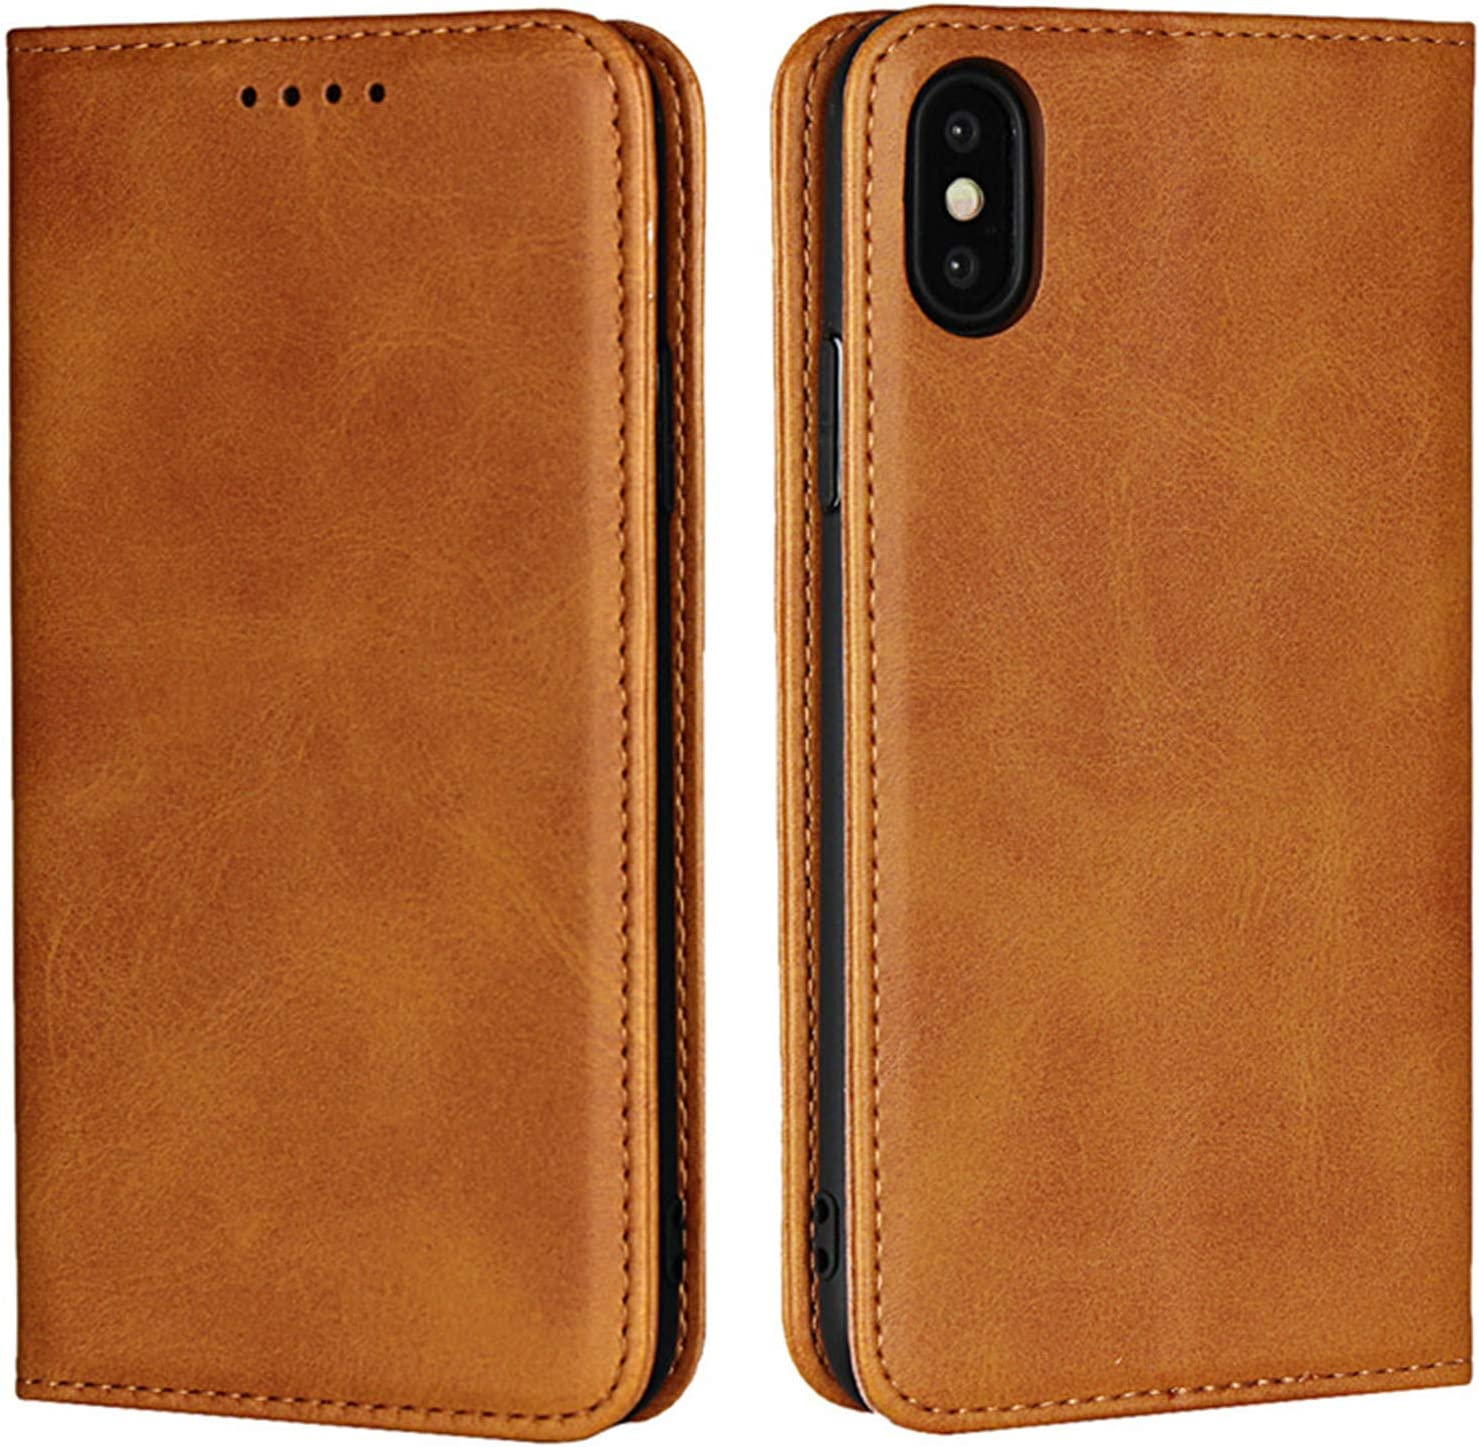 Zouzt Premium Pu Leather Wallet case Compatible iPhone X,Folio Flip Case with Magnetic Closure/Kickstand Feature/Card Slots(Light Brown)